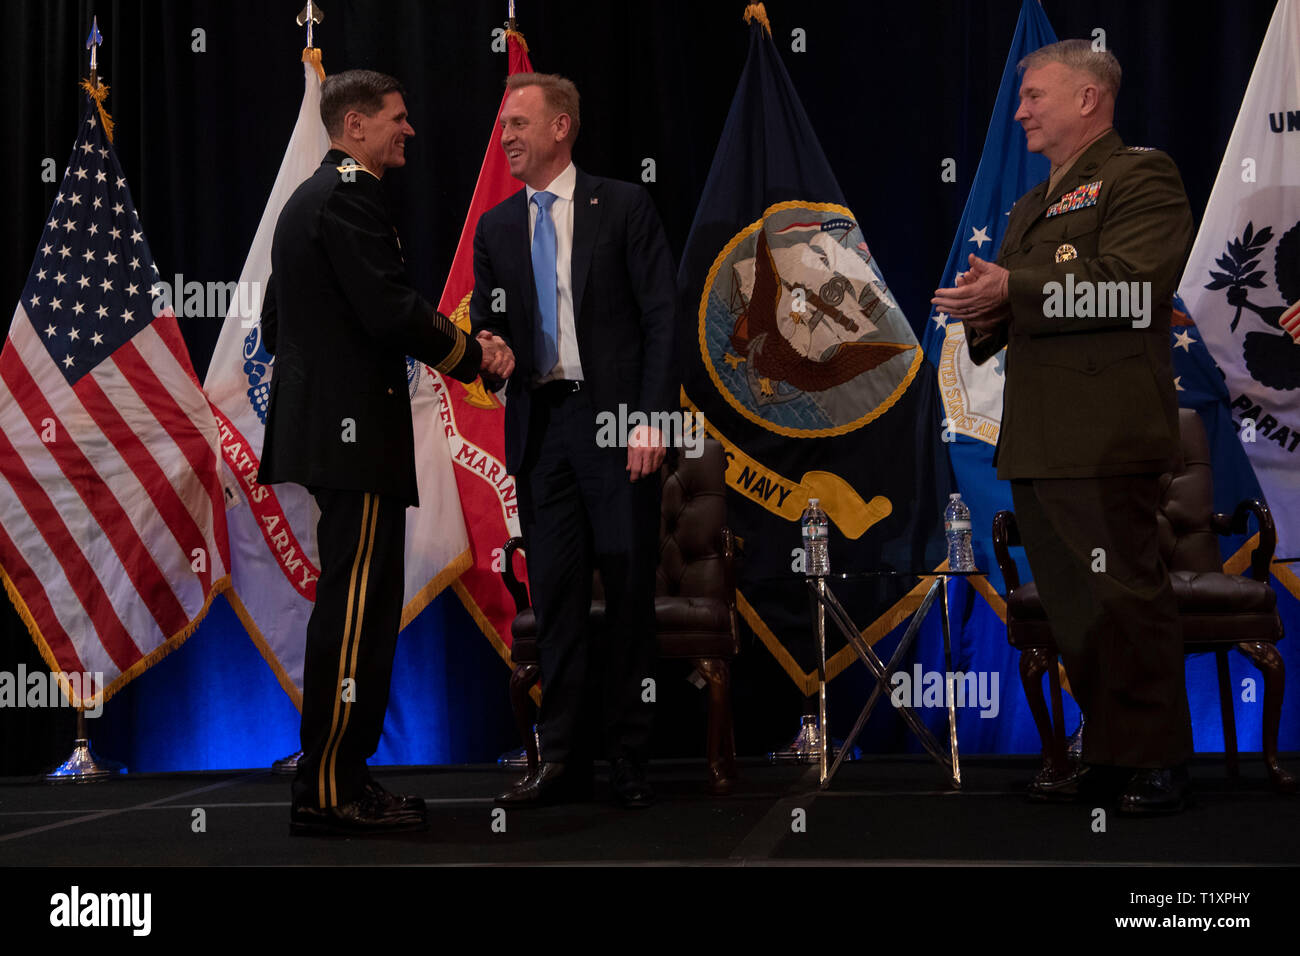 U.S. Acting Secretary of Defense Patrick M. Shanahan shakes hands with the outgoing commander of U.S. Central Command, U.S. Army Gen. Joseph L. Votel, at the Centcom change of command, Tampa, Florida, March 28, 2019. The new commander of U.S. Central Command, U.S. Marine Corps Gen. Kenneth F. McKenzie Jr., is to the right. (DoD photo by Lisa Ferdinando) Stock Photo